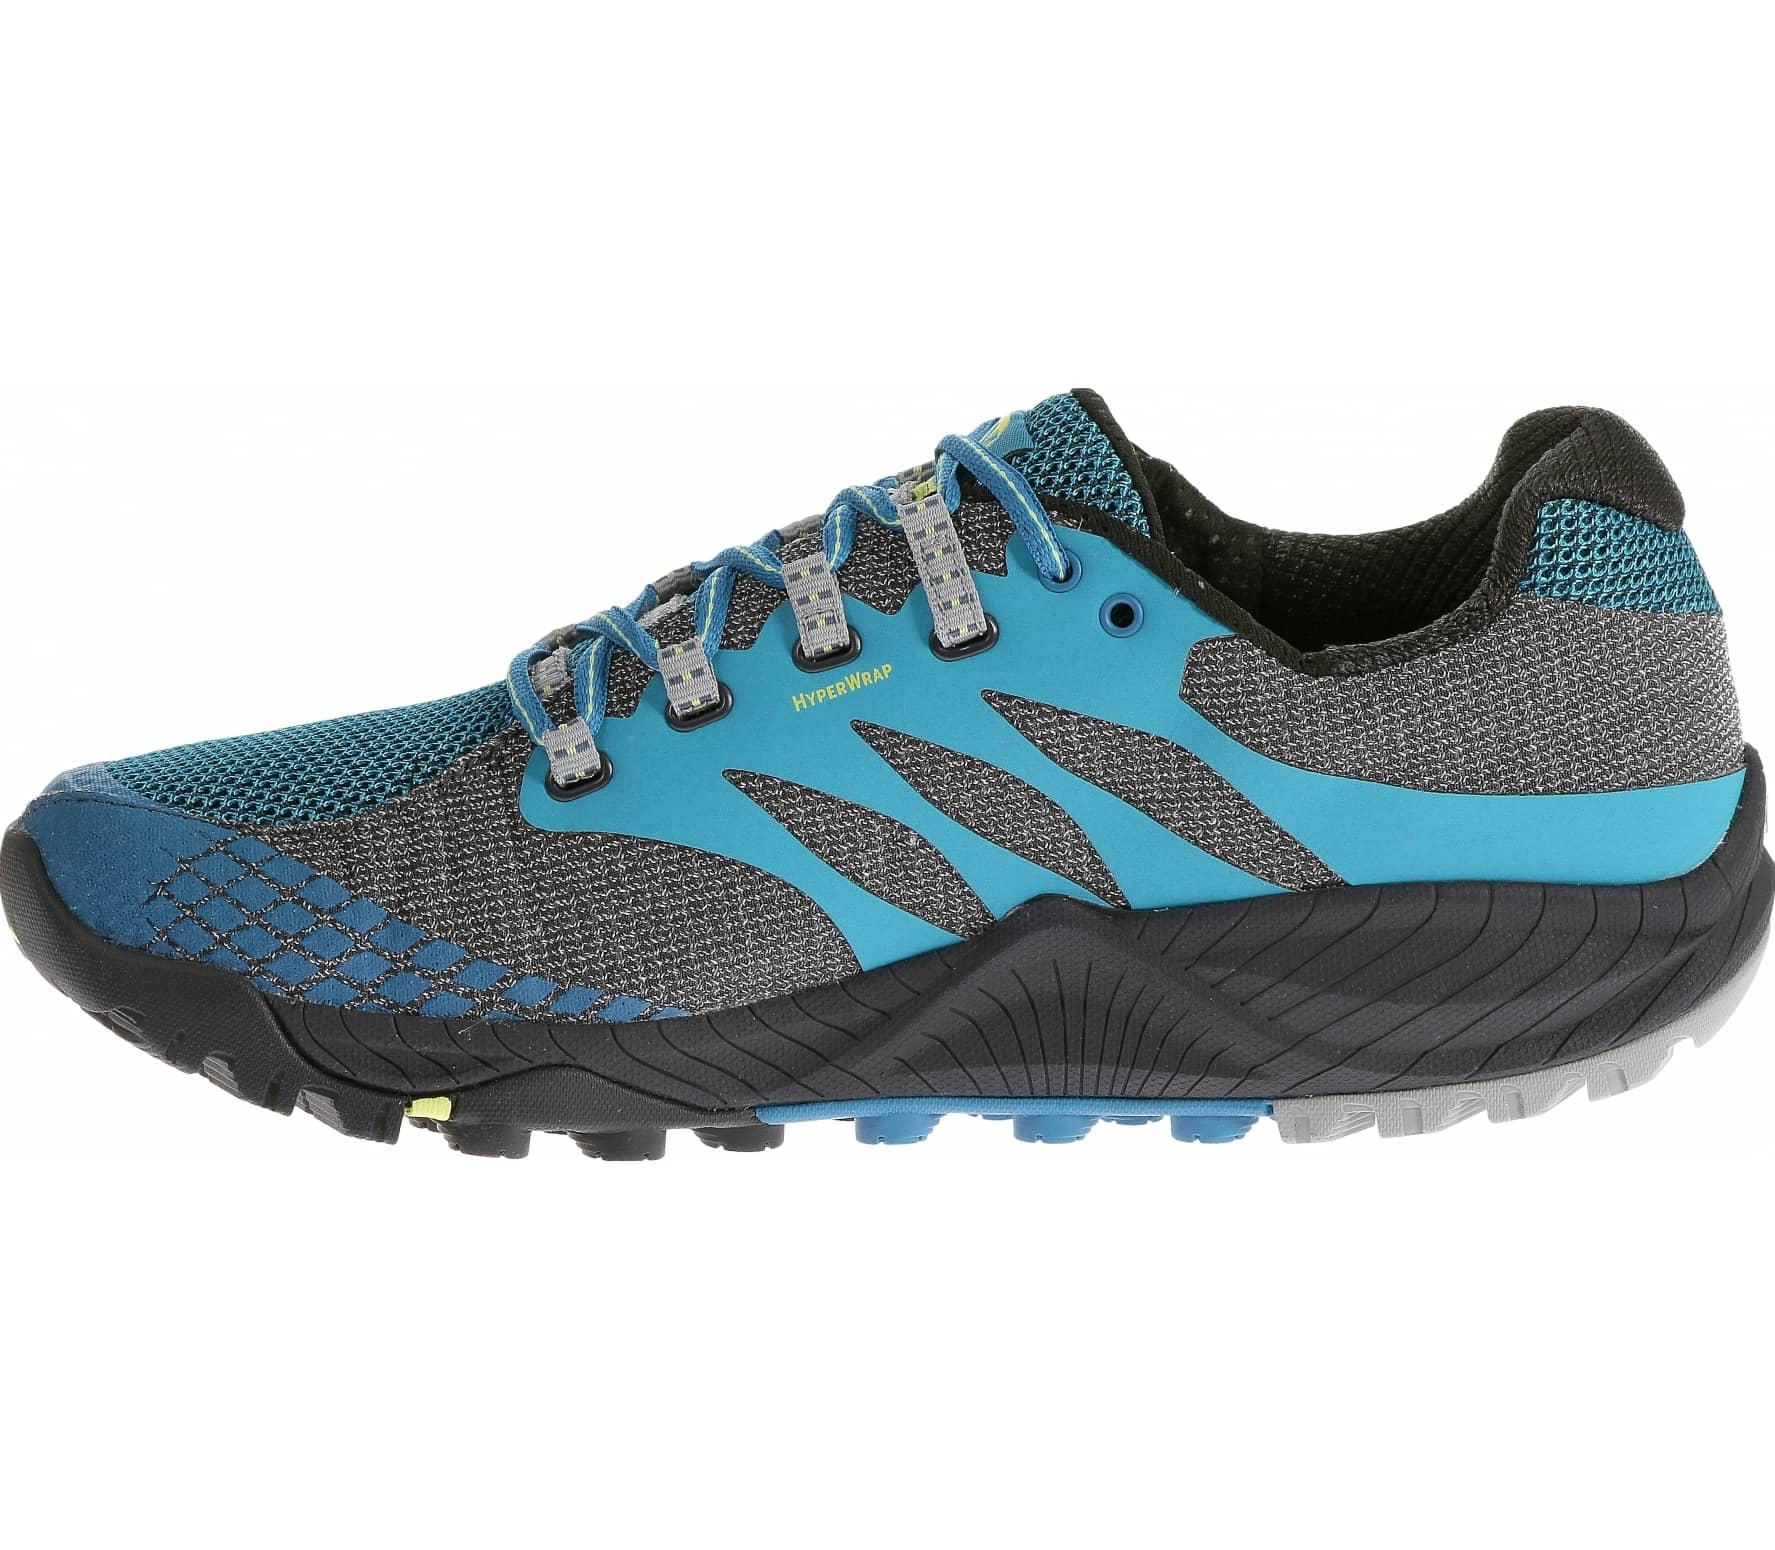 Chaussures Merrell All Out Charge gris bleu